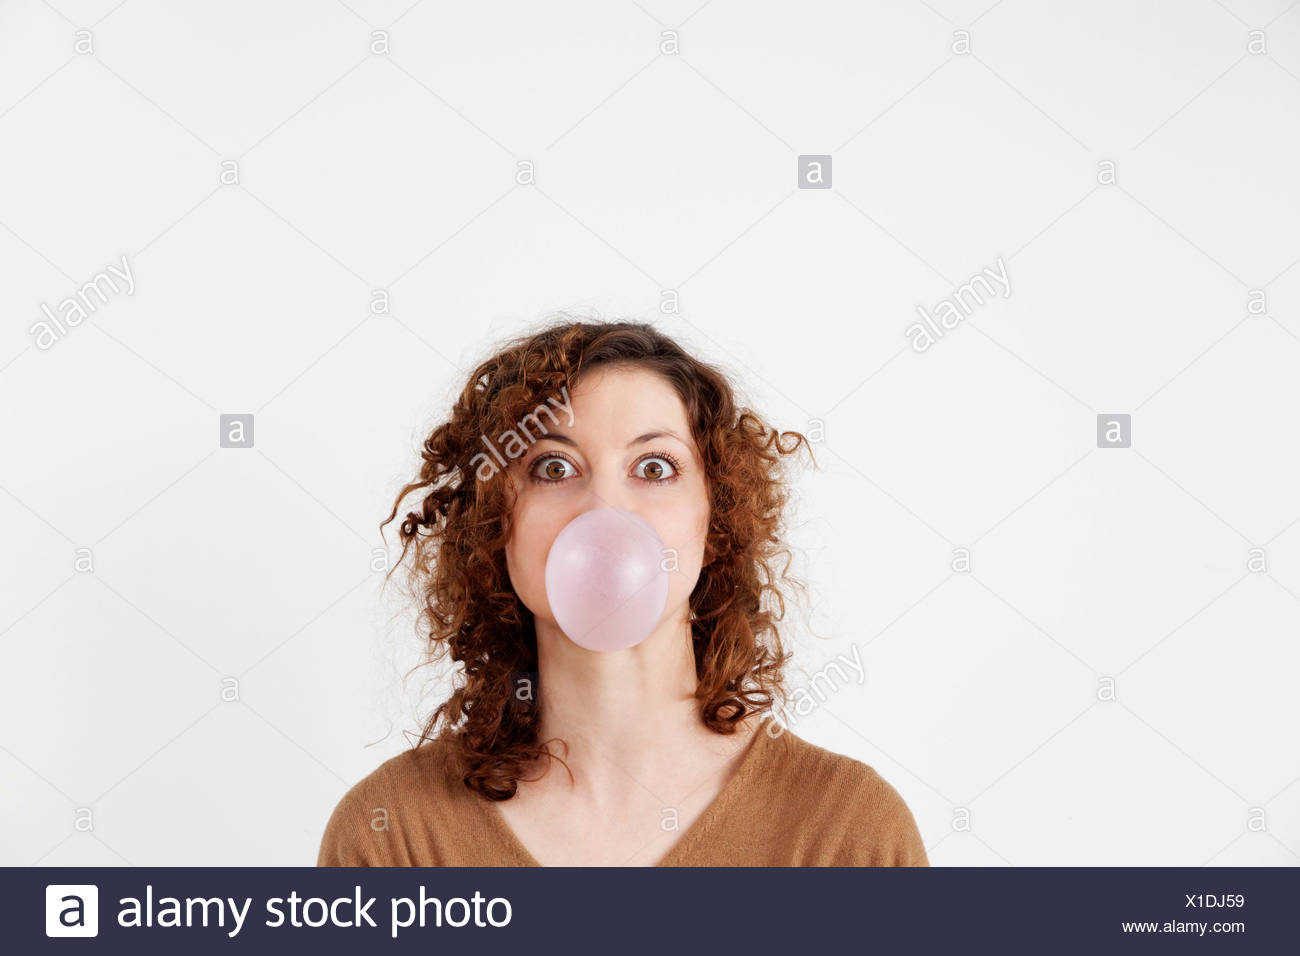 Young woman blowing a chewing gum bubble - Stock Image